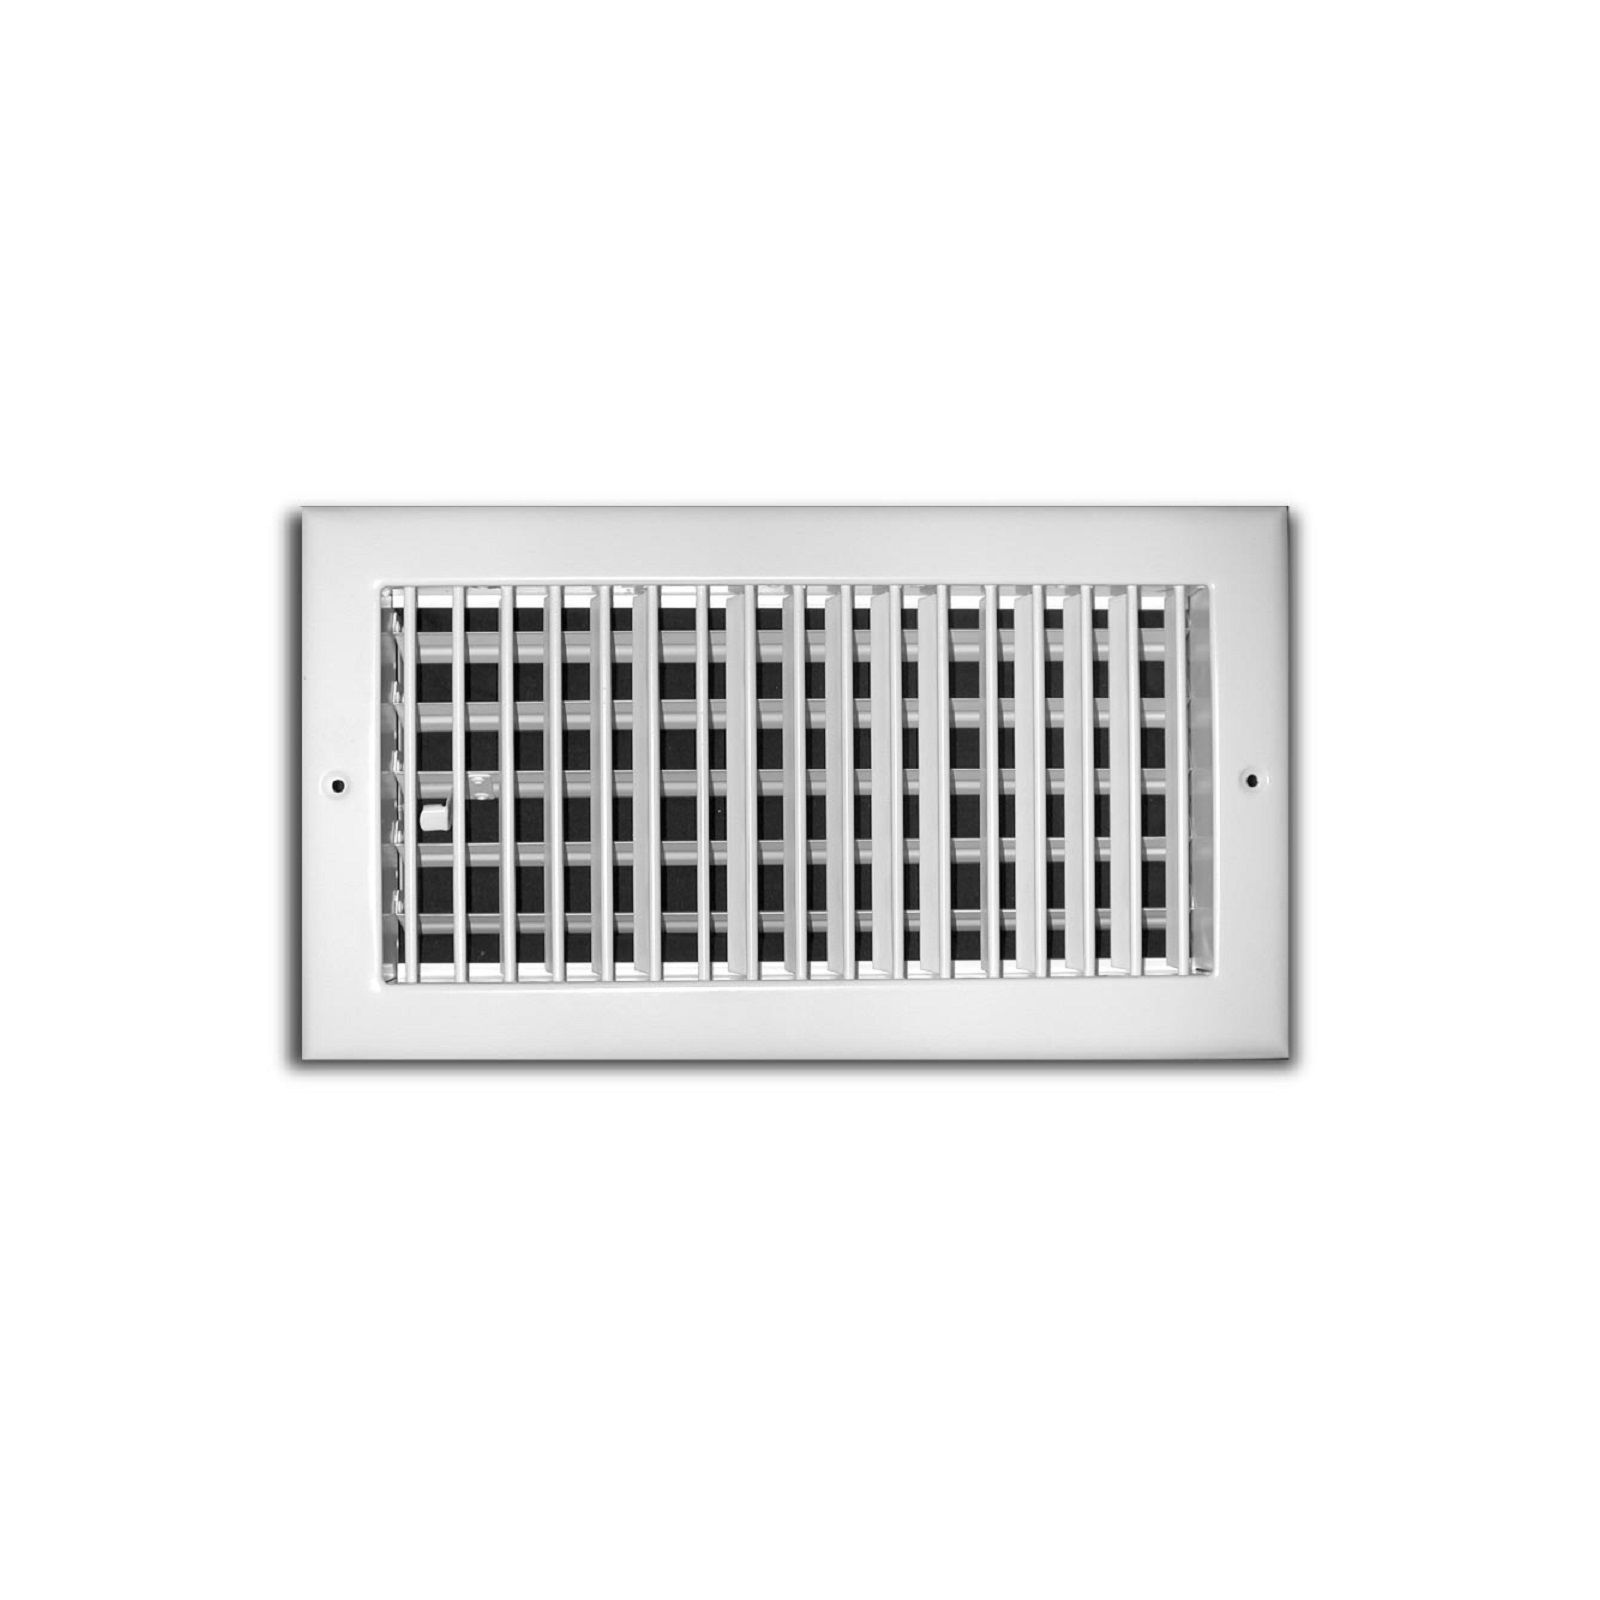 "TRUaire 210VM 10X06 - Steel Adjustable 1-Way Wall/Ceiling Register With Multi Shutter Damper, White, 10"" X 06"""